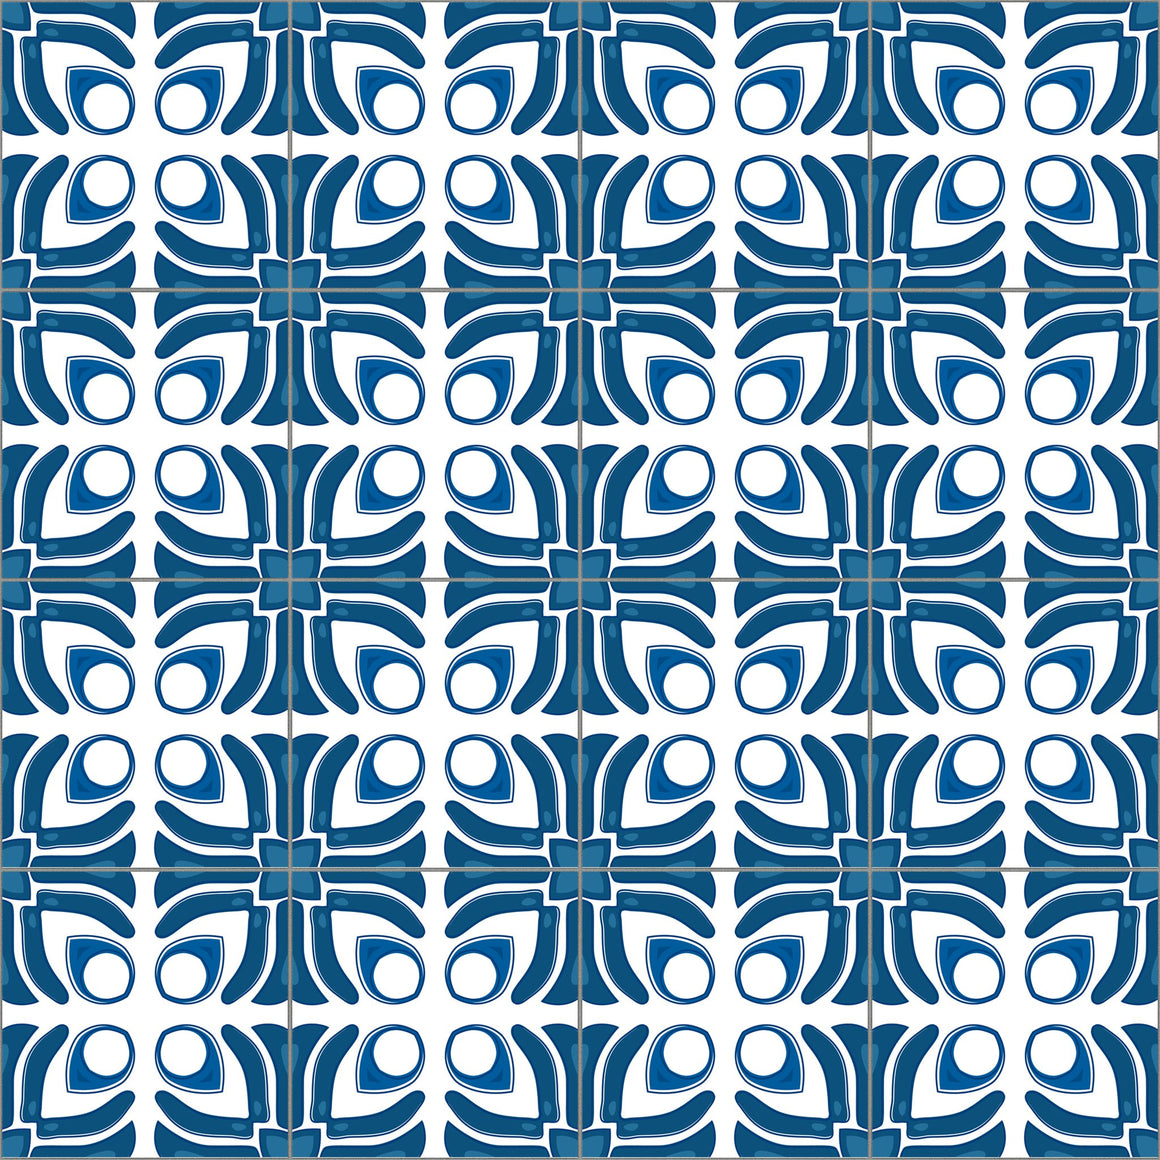 Tile stickers - KP099